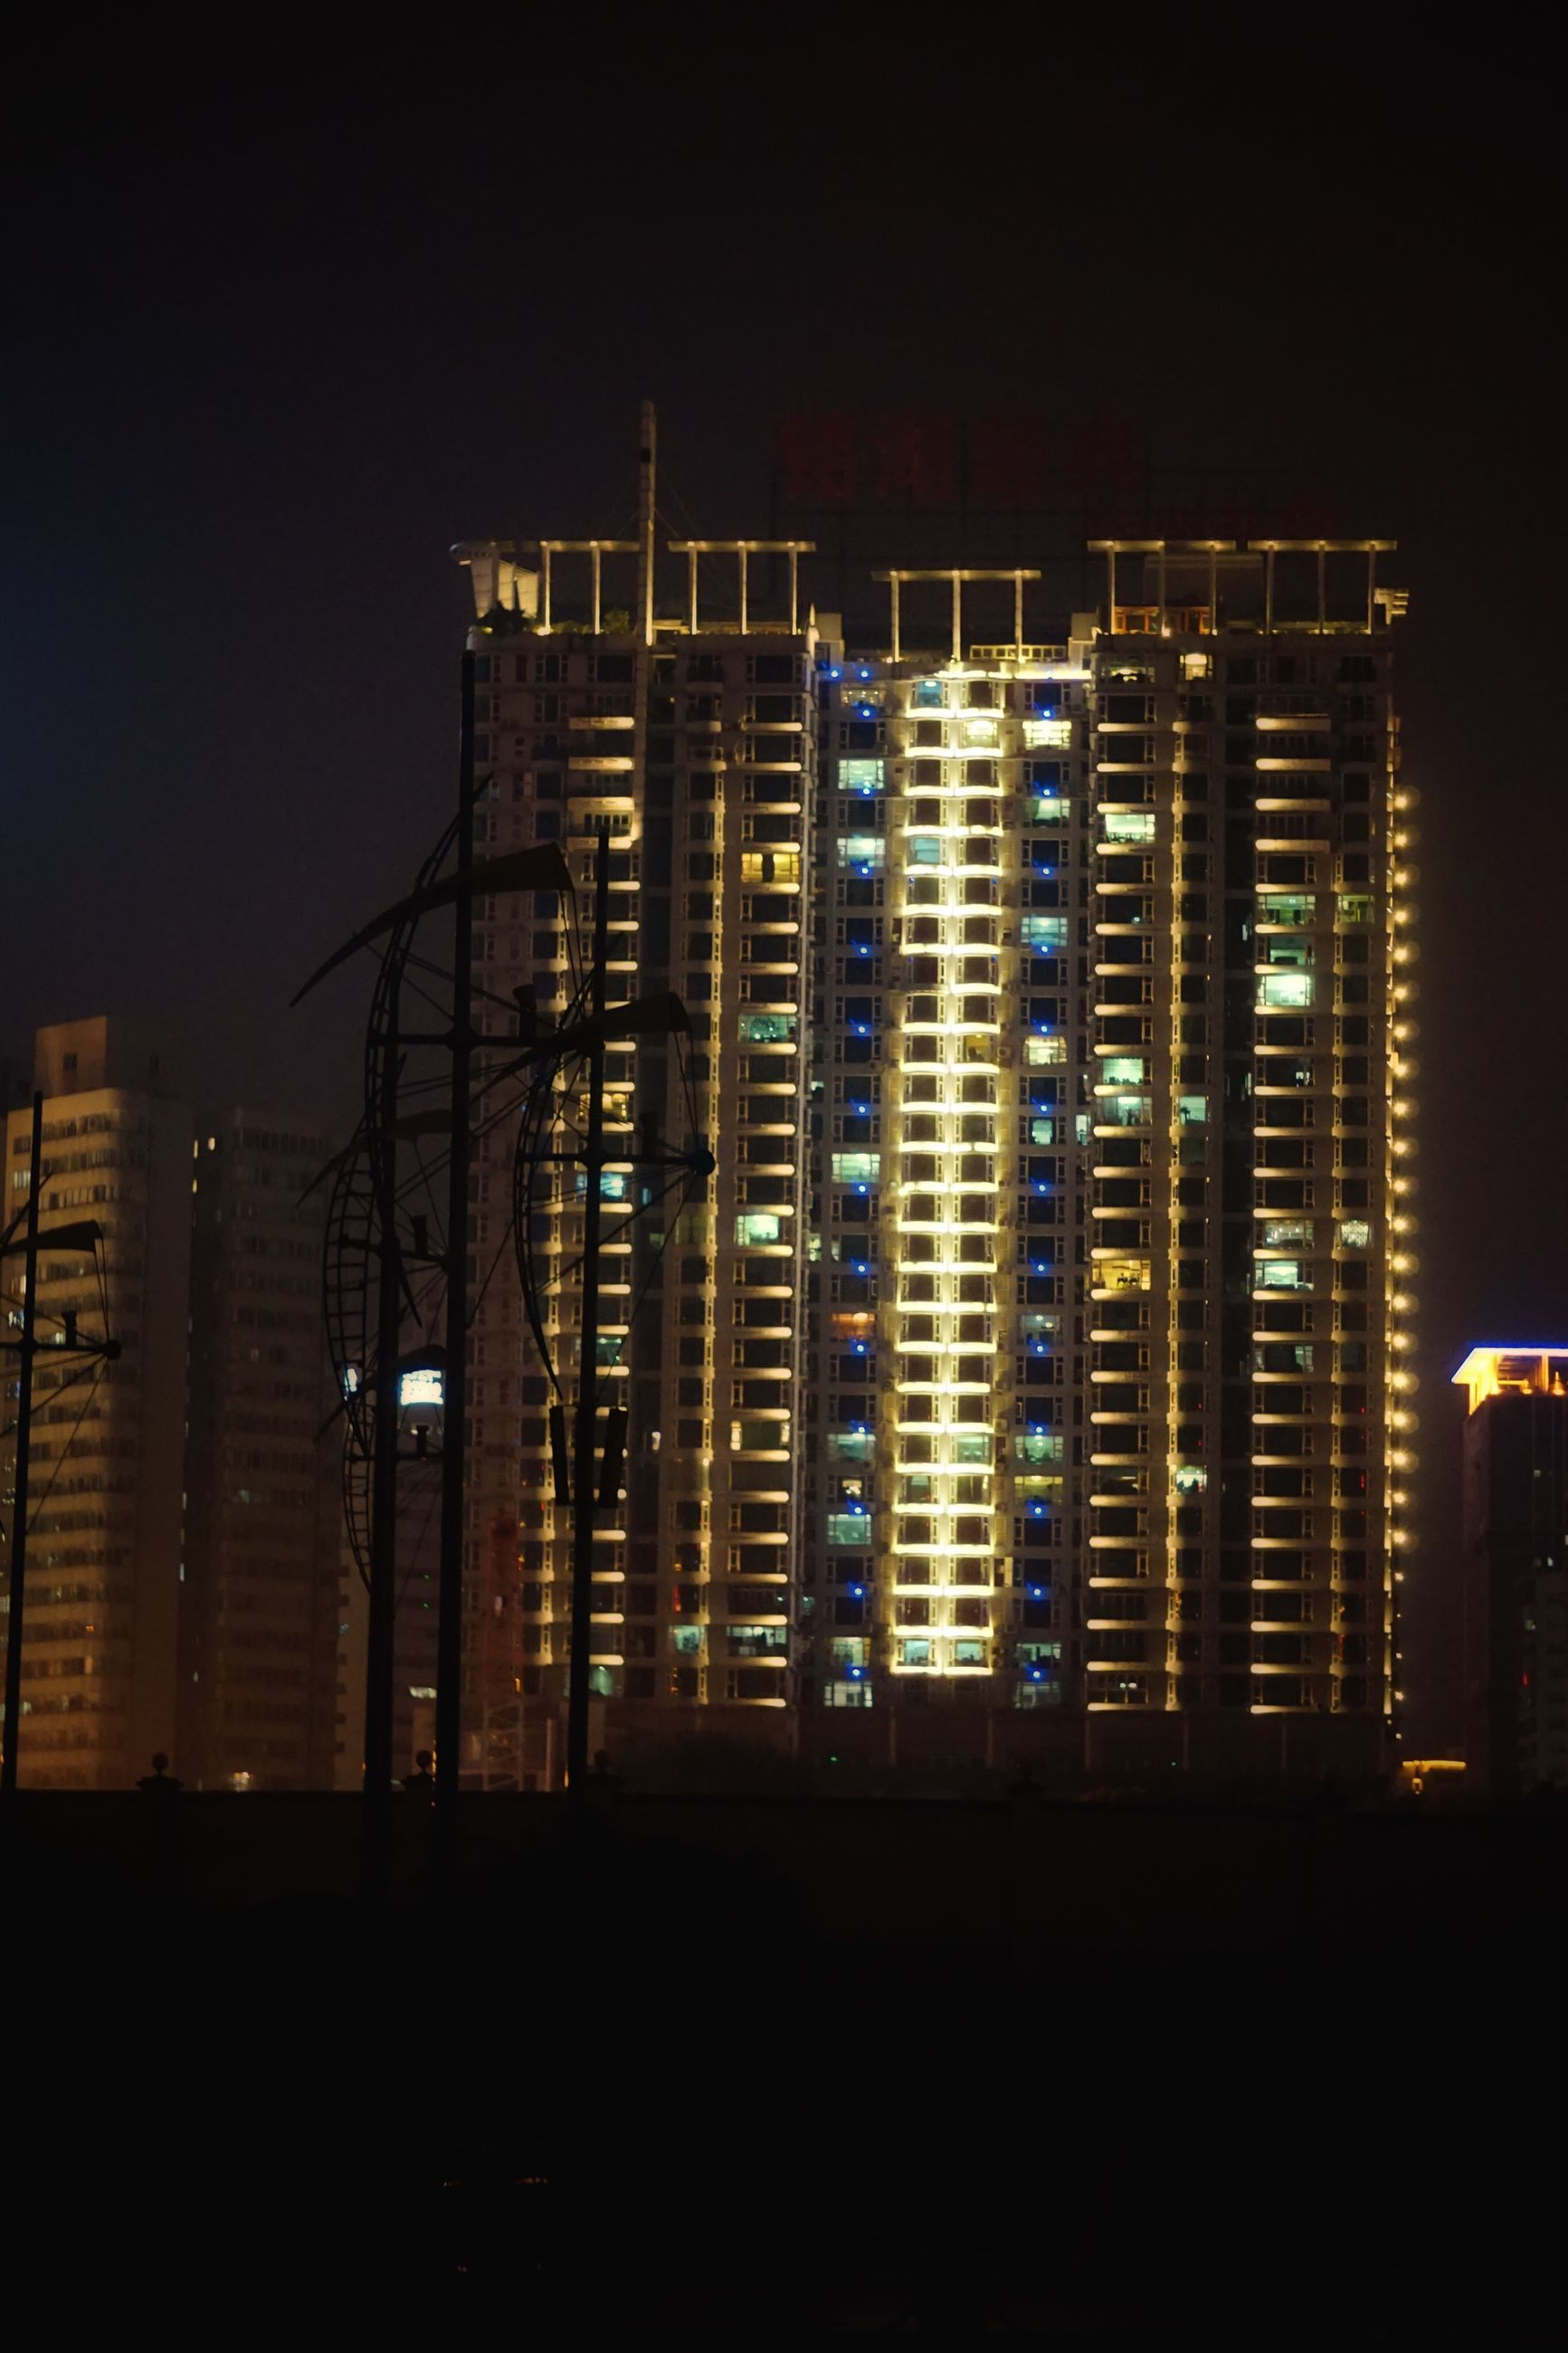 architecture, building exterior, built structure, city, skyscraper, tall - high, tower, building story, night, development, illuminated, residential building, apartment, travel destinations, city life, urban skyline, wide shot, wide, sky, office building, glowing, modern, romantic sky, growth, outdoors, residential district, tall